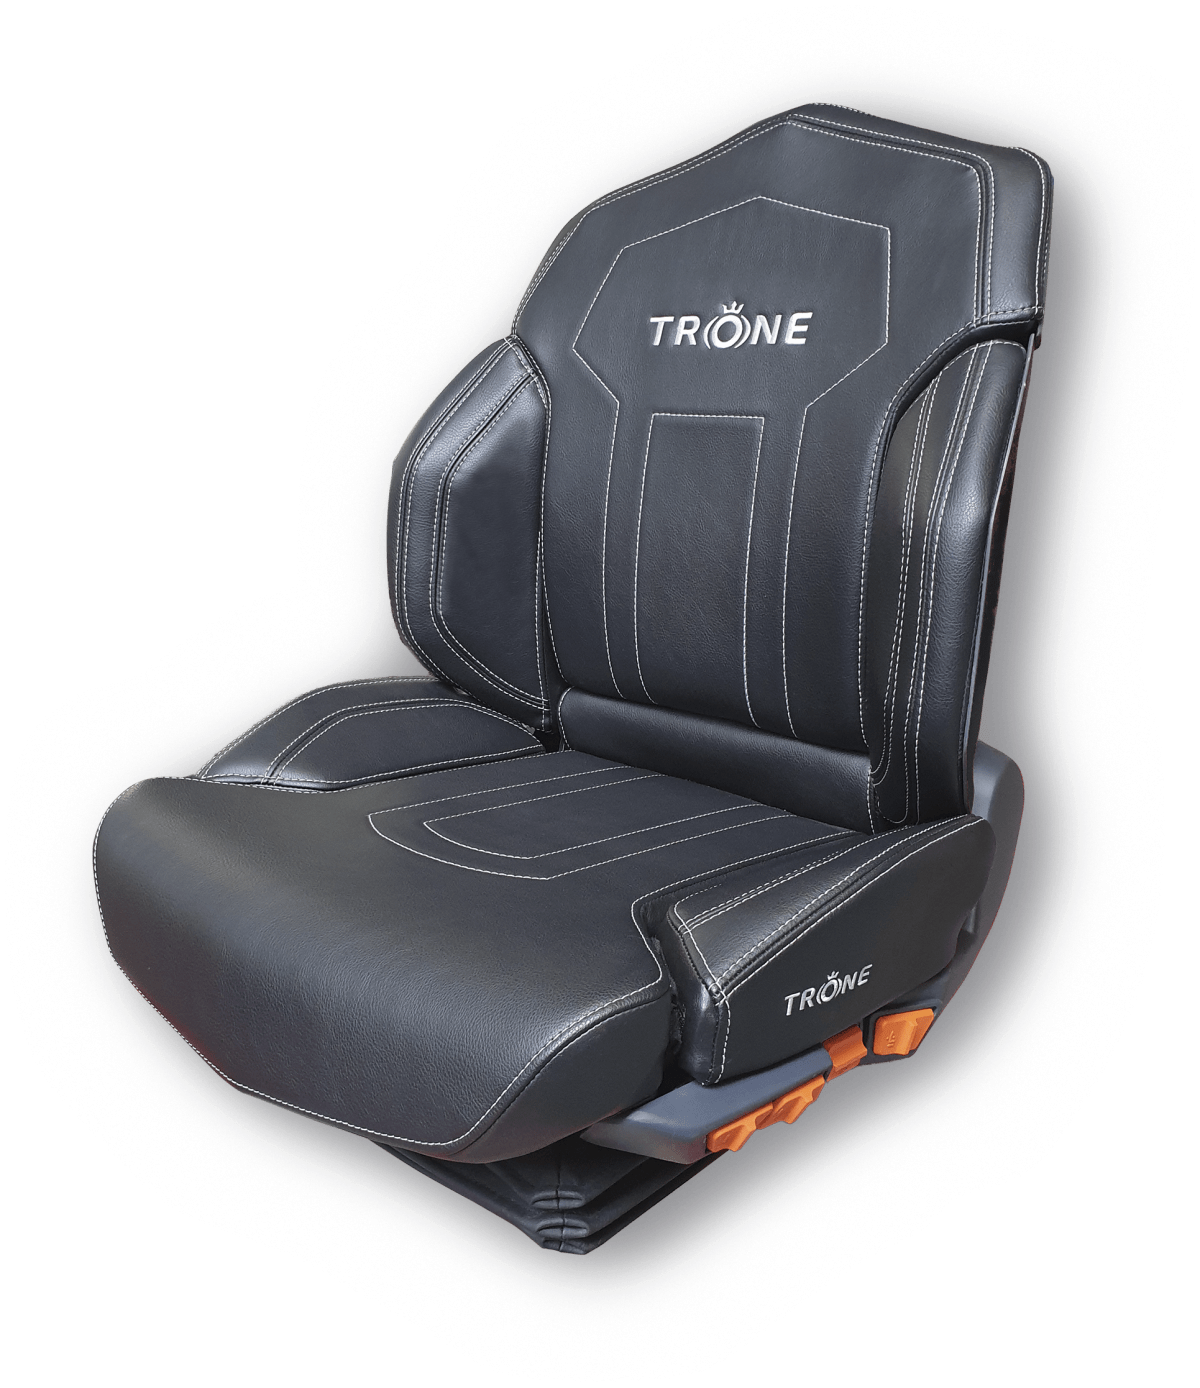 Trone-Low-Back-elektrisch